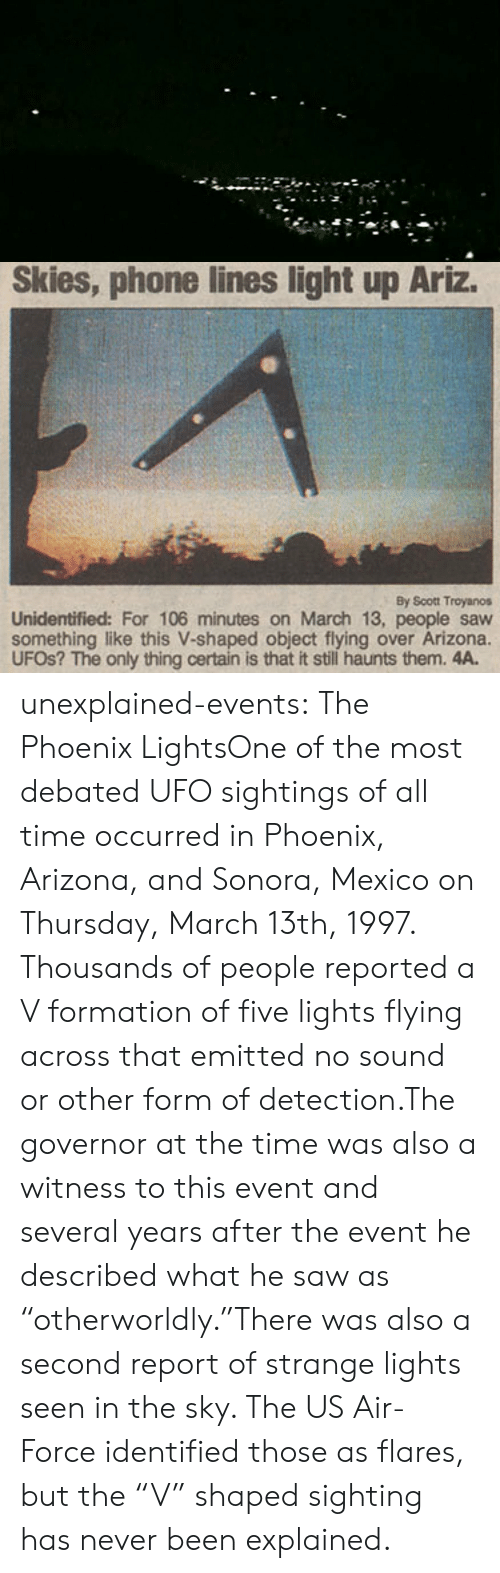 "Arizona: Skies, phone lines light up Ariz.  By Scott Troyanos  Unidentified: For 106 minutes on March 13, people saw  something like this V-shaped object flying over Arizona.  UFOS? The only thing certain is that it still haunts them. 4A. unexplained-events:  The Phoenix LightsOne of the most debated UFO sightings of all time occurred in Phoenix, Arizona, and Sonora, Mexico on Thursday, March 13th, 1997. Thousands of people reported a V formation of five lights flying across that emitted no sound or other form of detection.The governor at the time was also a witness to this event and several years after the event he described what he saw as   ""otherworldly.""There was also a second report of strange lights seen in the sky. The US Air-Force identified those as flares, but the ""V"" shaped sighting has never been explained."